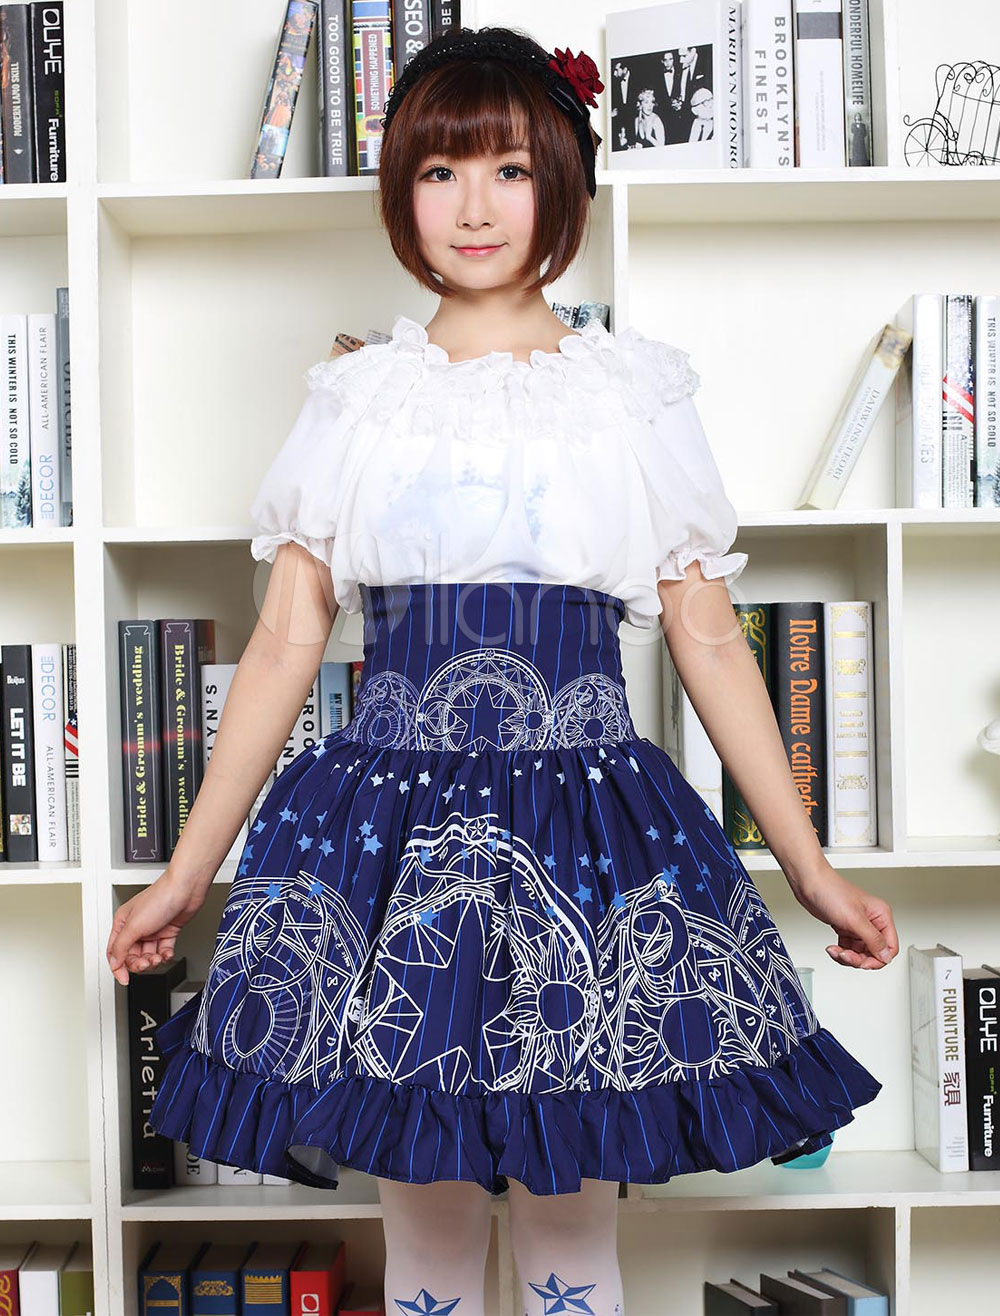 Buy Sweet Lolita Dress SK Blue Lolita Dress High Waist Magic Array Printed Ruffle Hem Pleated Lolita Skirt for $45.99 in Milanoo store